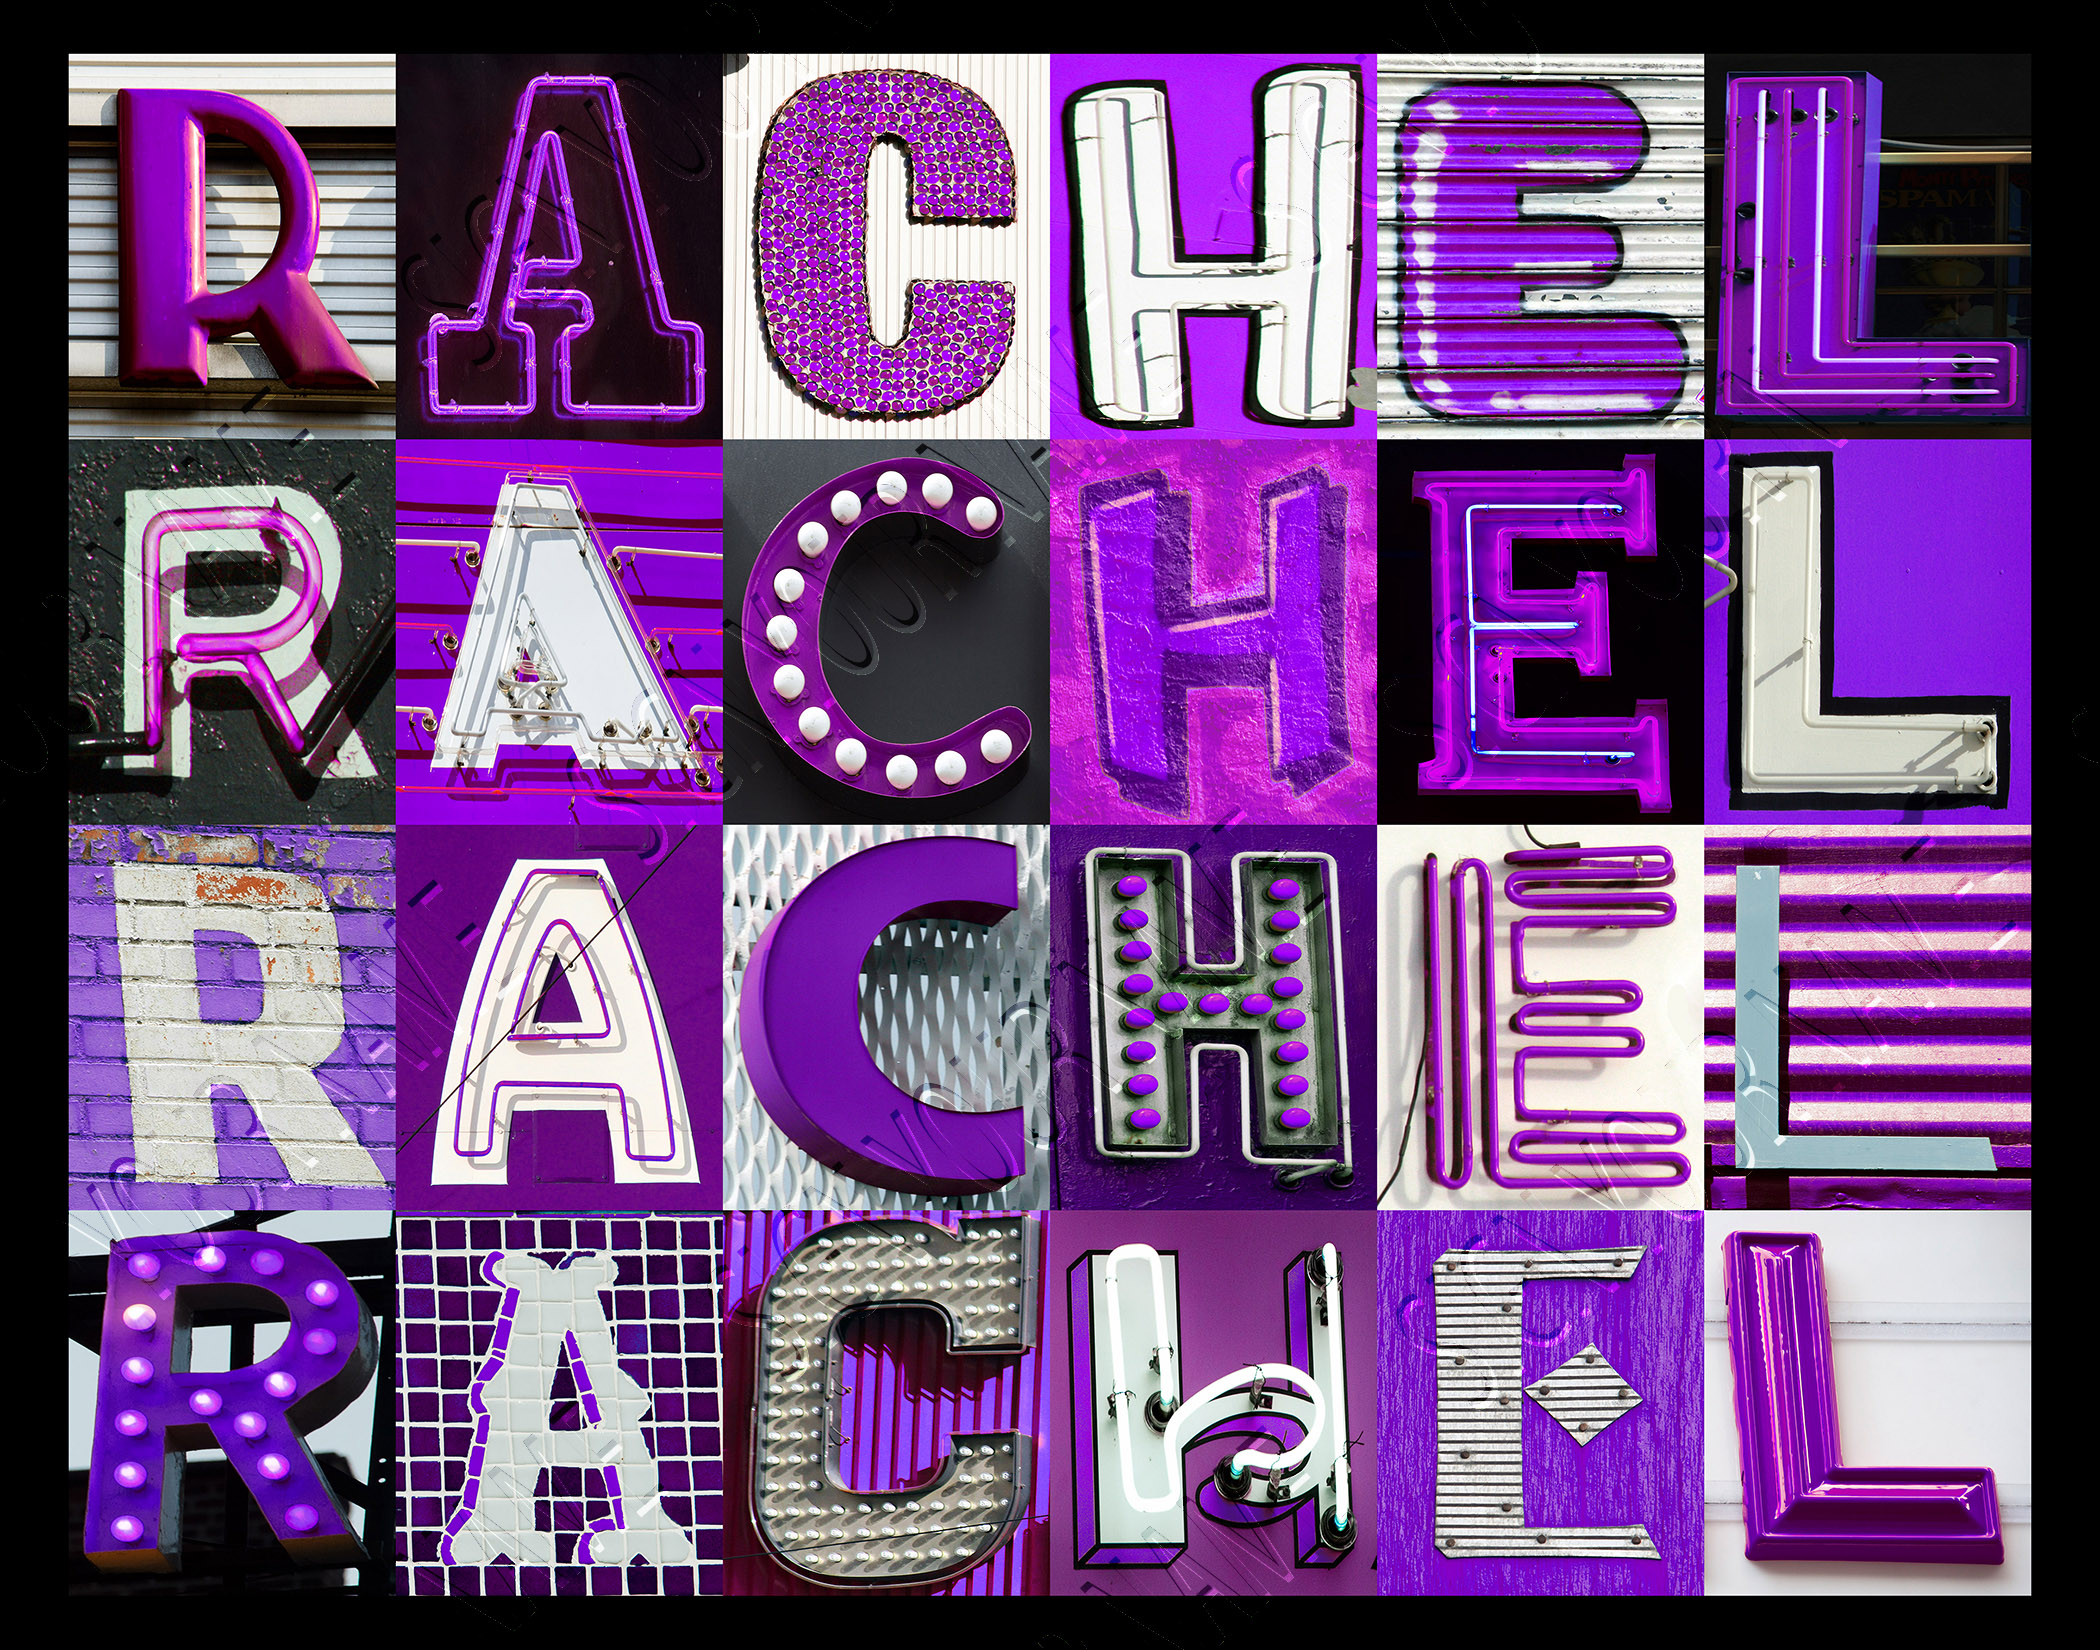 https://www.etsy.com/listing/245765327/personalized-poster-featuring-rachel?ref=shop_home_active_3